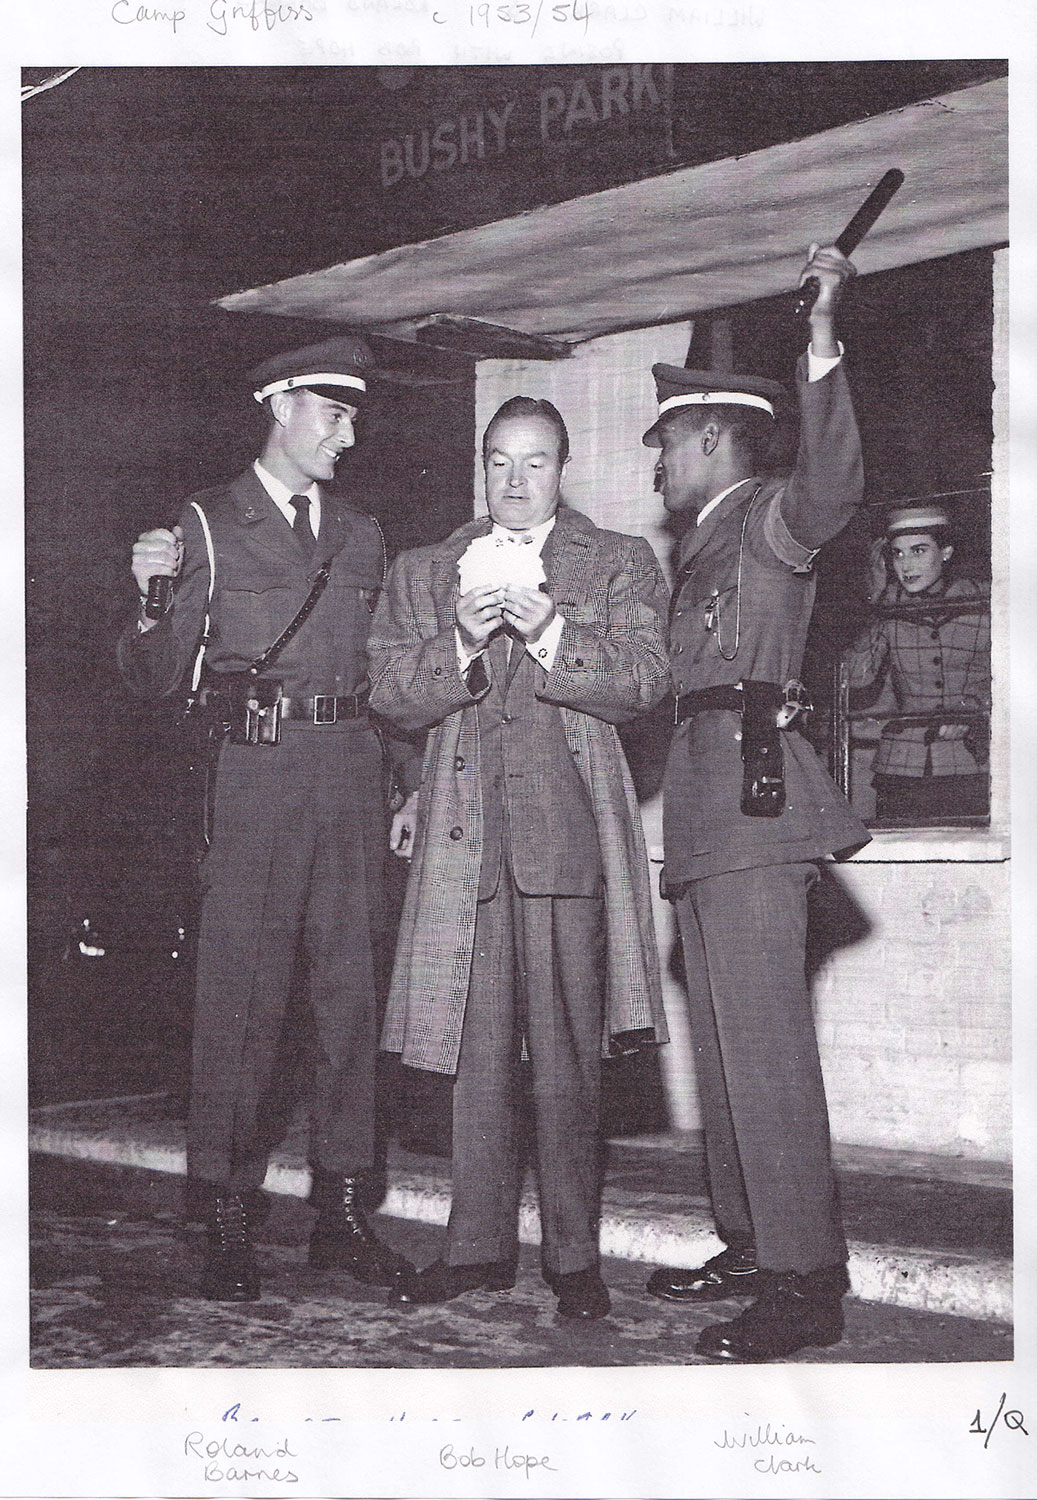 Bob Hope meeting US troops at Bushy Park